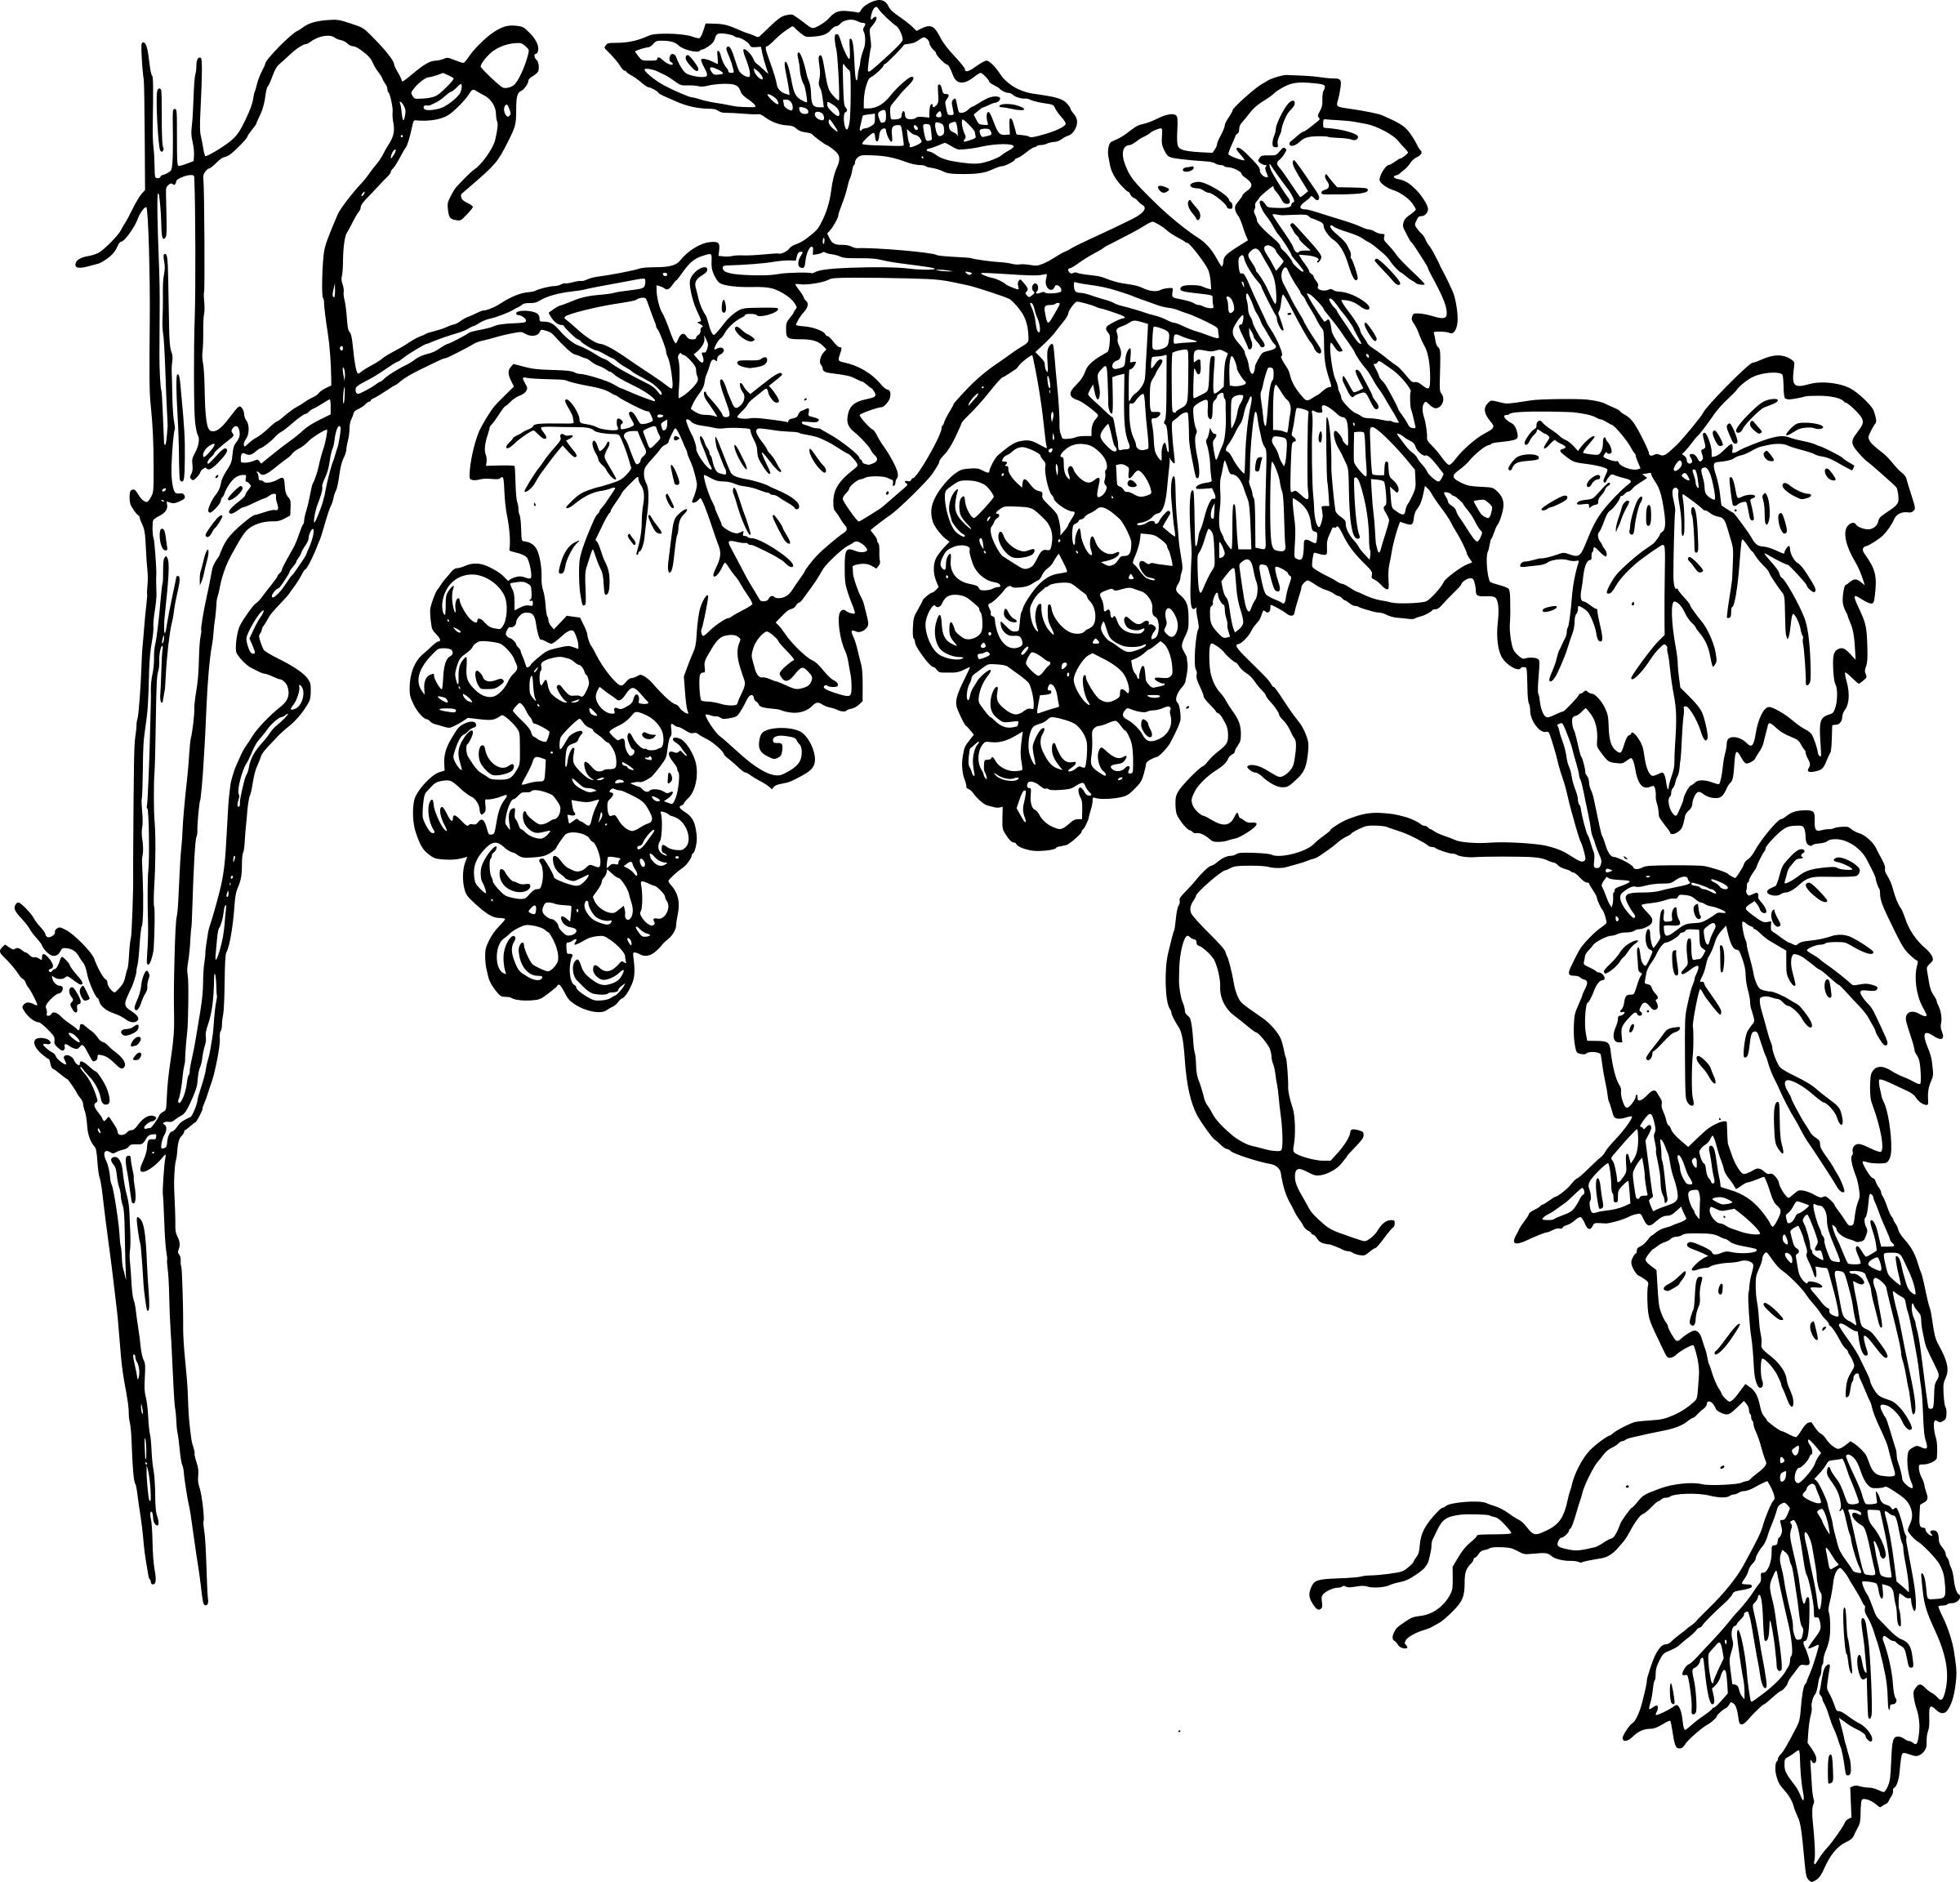 png library stock Grape vine drawing free. Grapevine clipart line